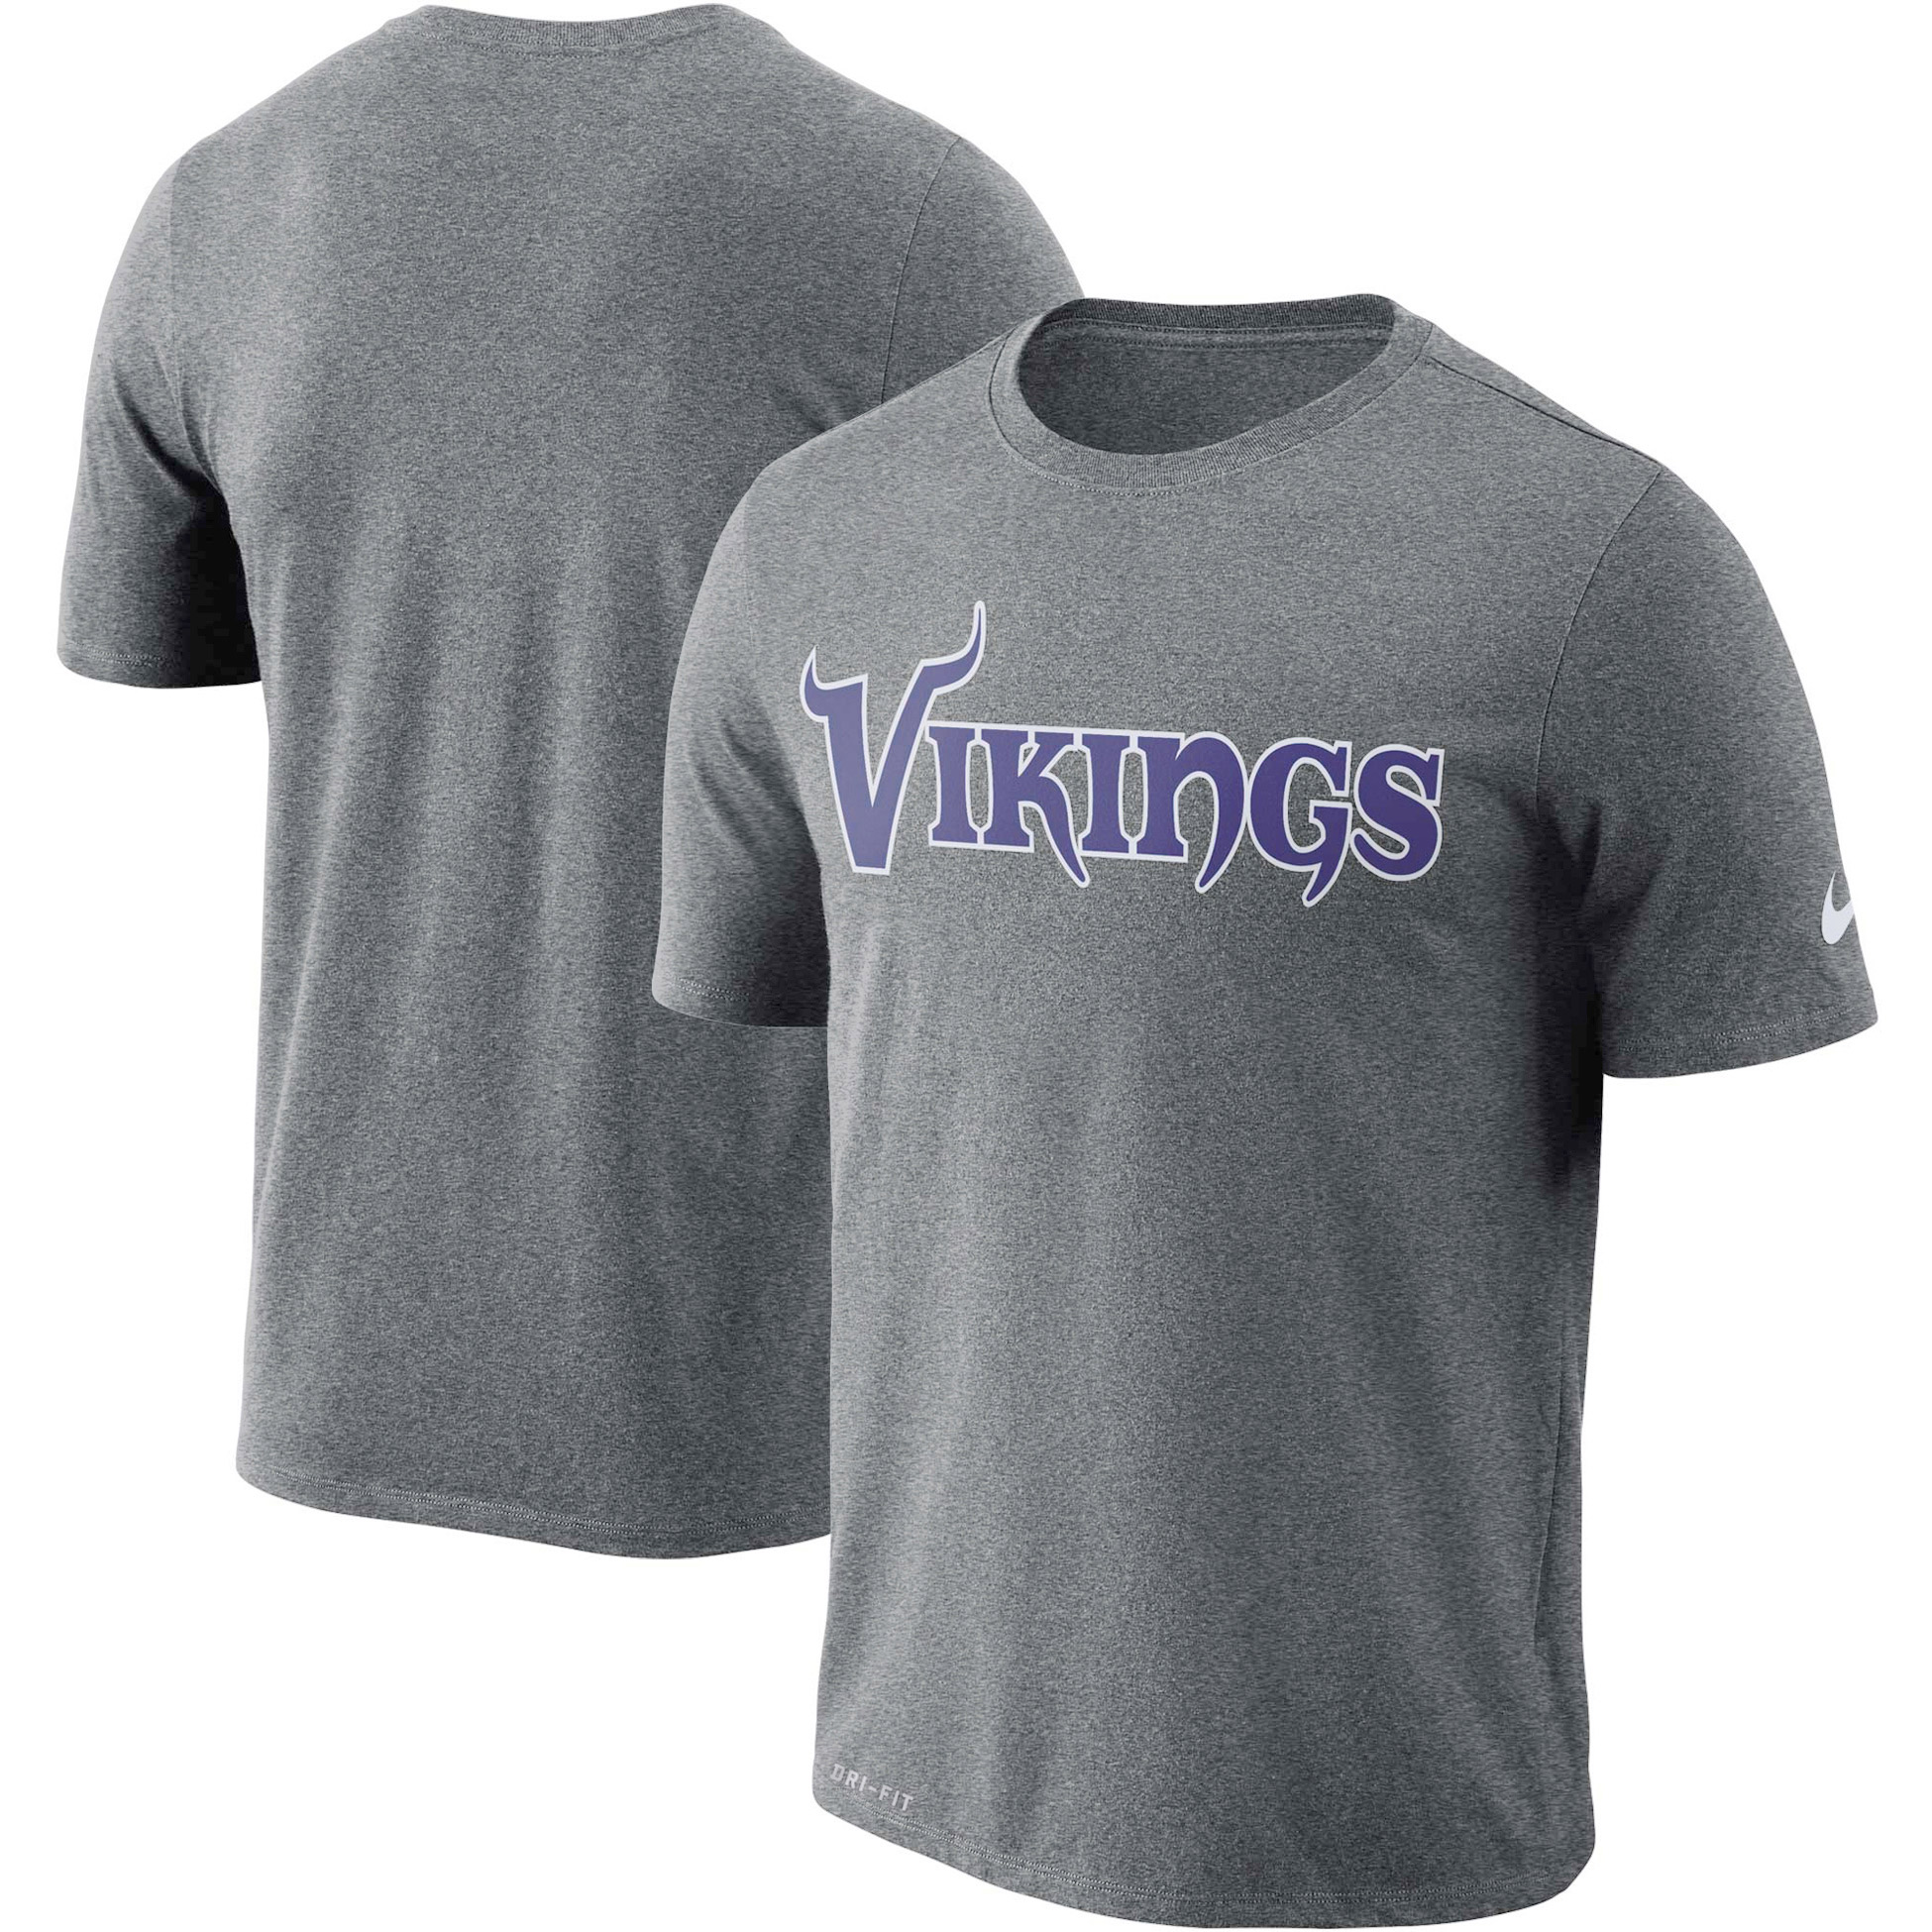 Minnesota Vikings Nike Dri-FIT Cotton Essential Wordmark Performance T-Shirt - Heathered Charcoal